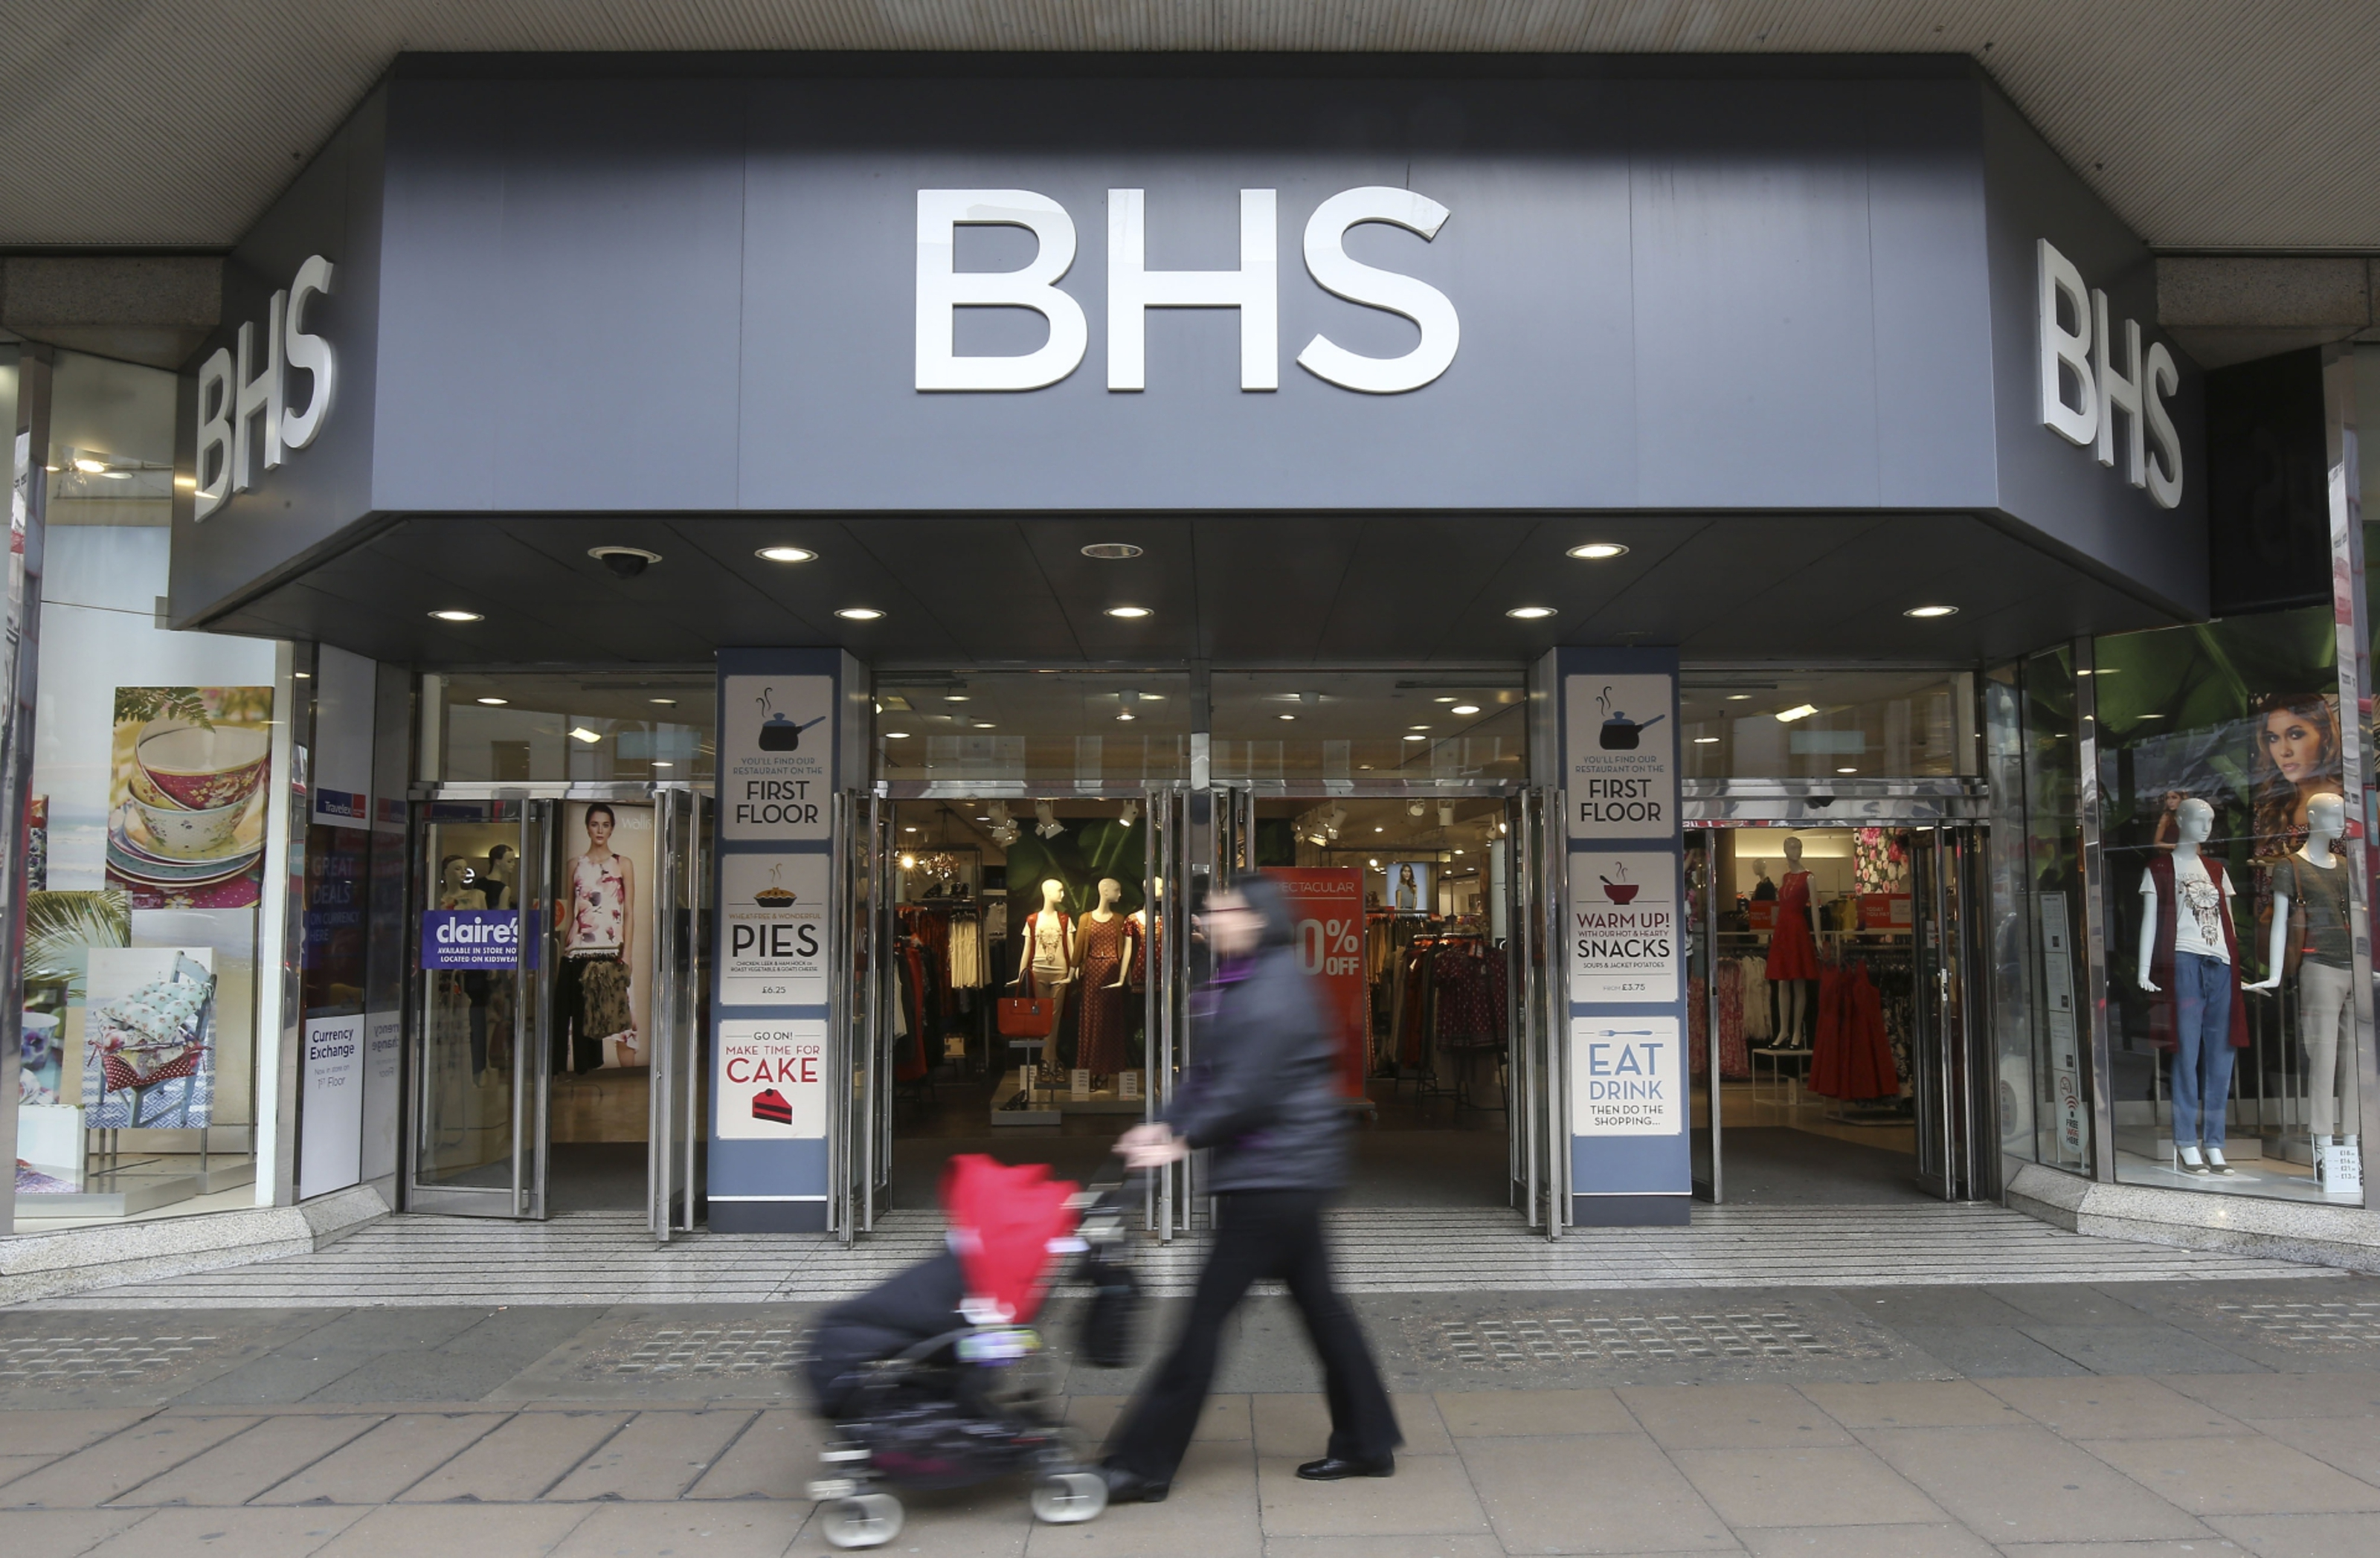 BHS is one of the best known names on the UK high street.